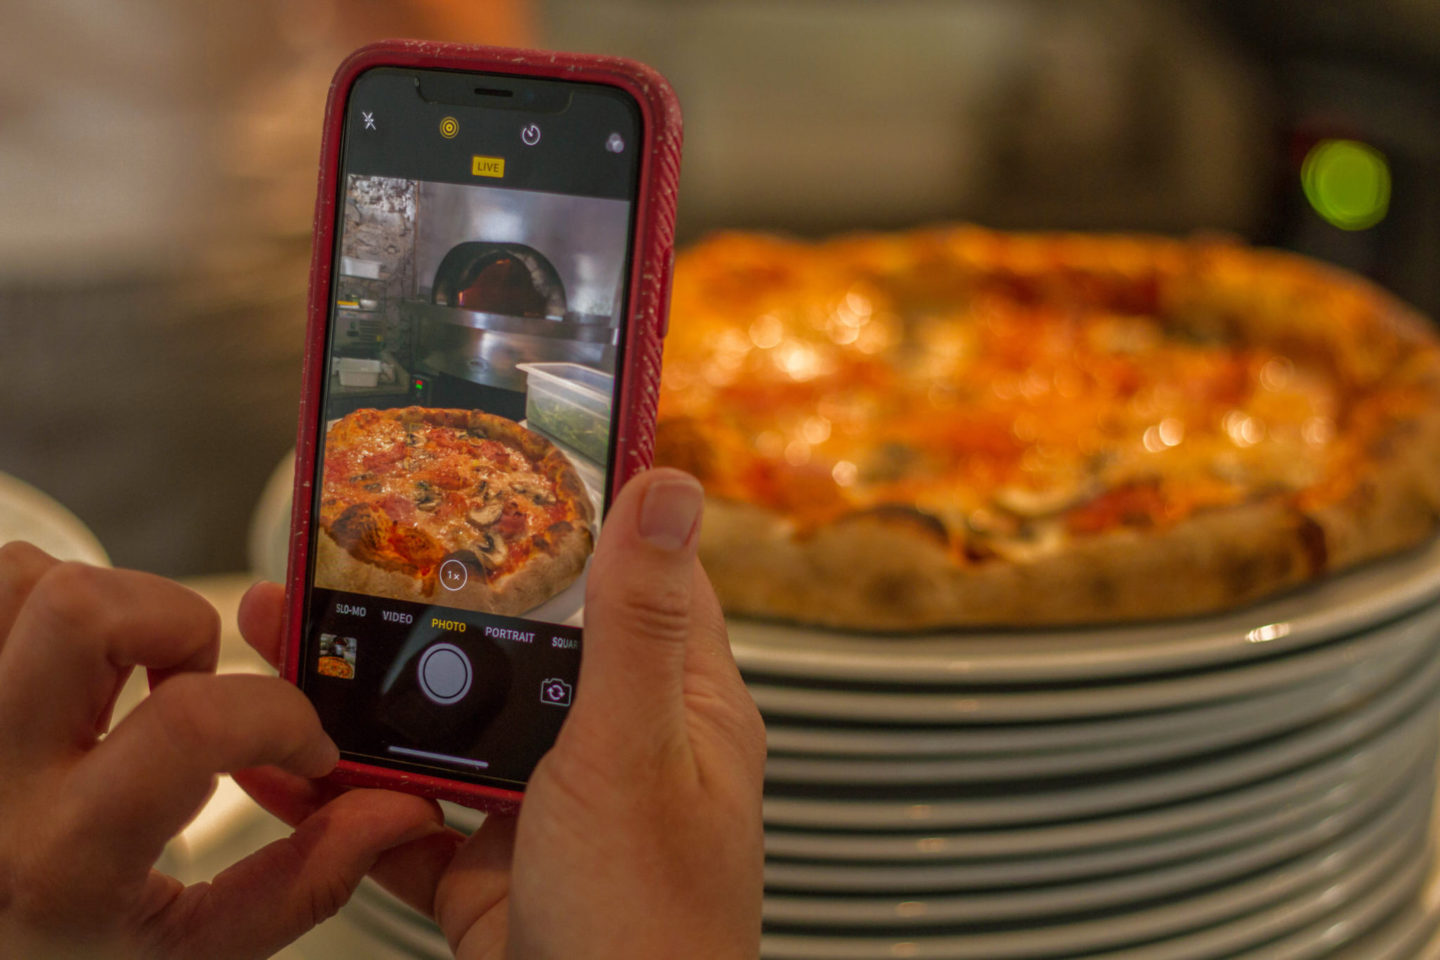 iPhone X being used to take picture of pizza